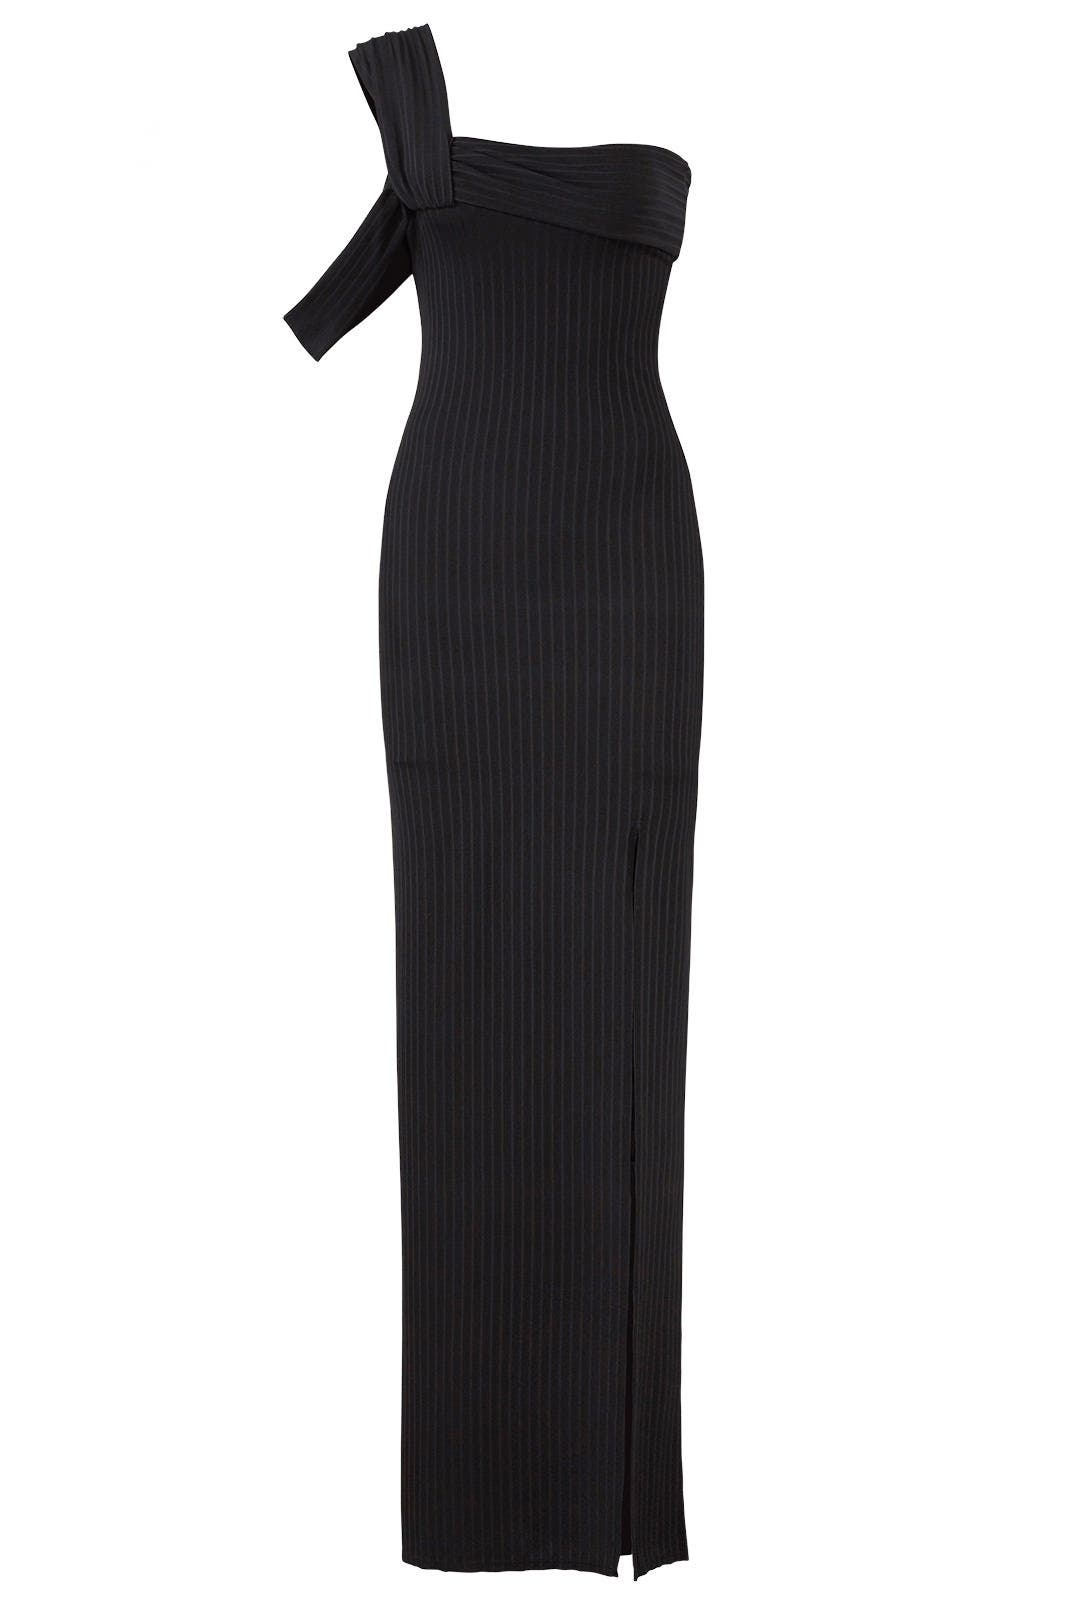 Black High Slit Gown by Baja East for $80 - $100 | Rent the Runway